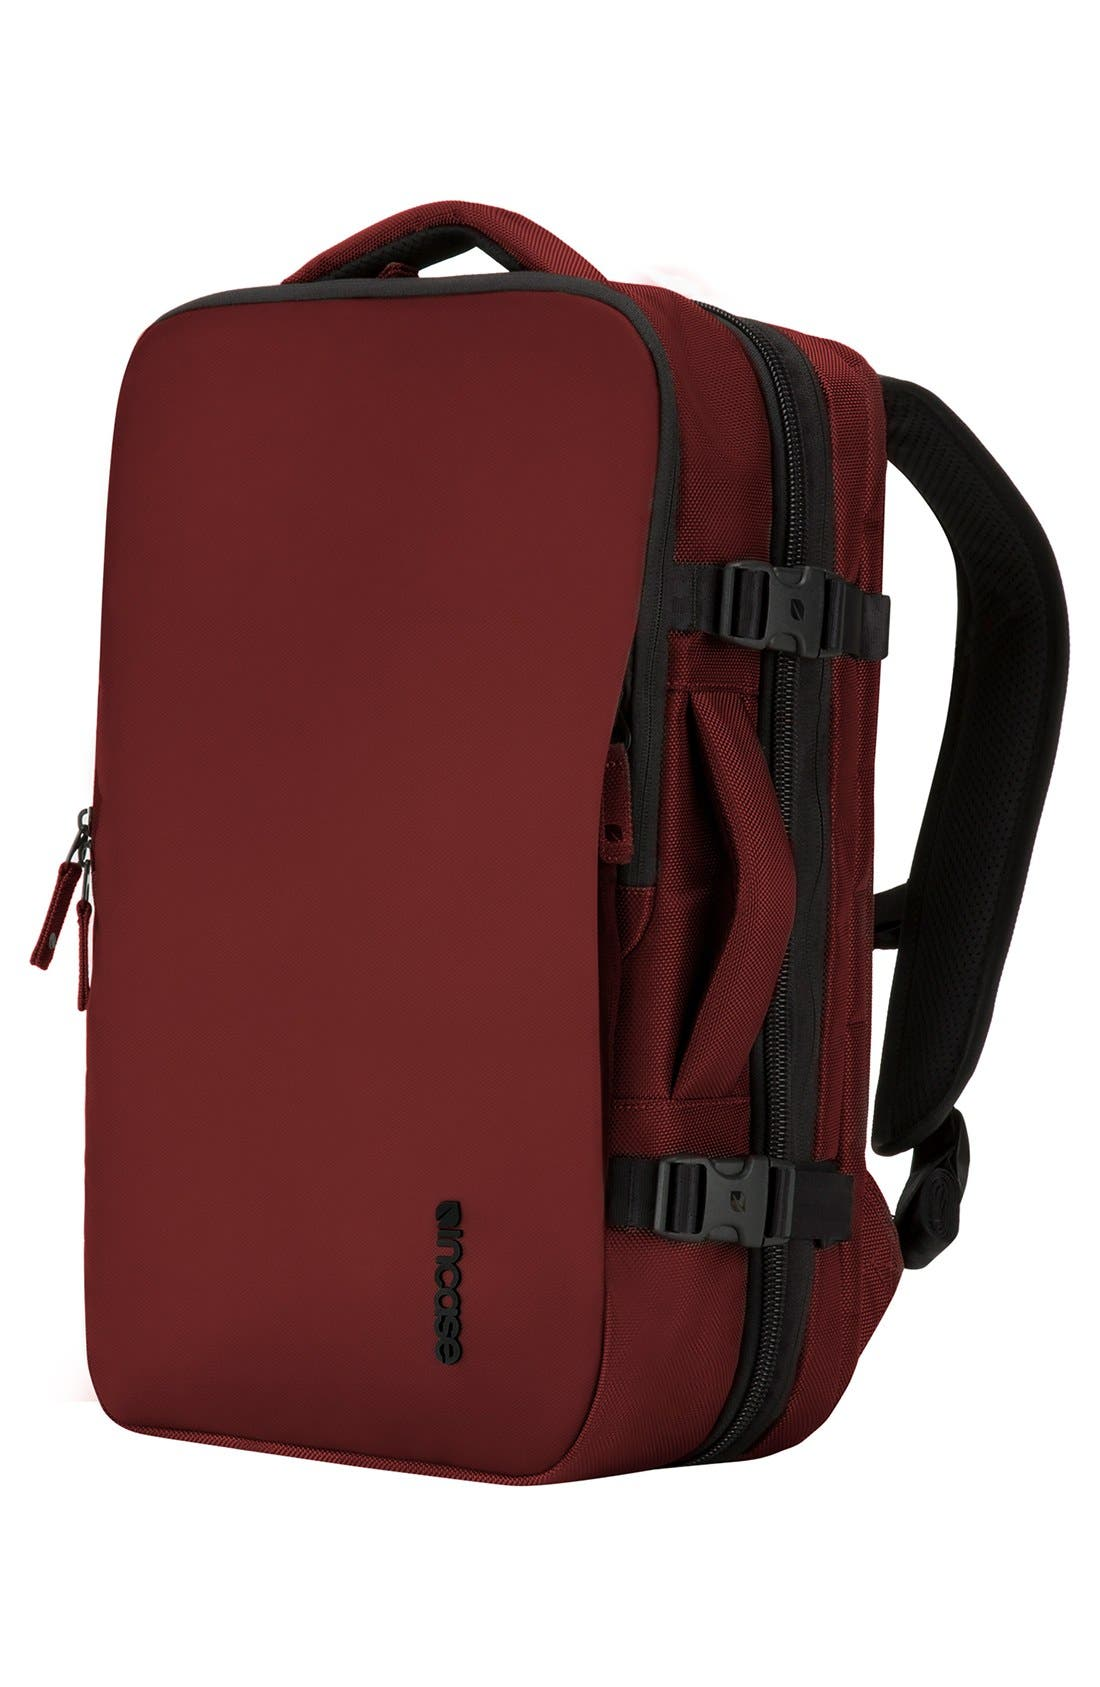 VIA Backpack,                             Alternate thumbnail 2, color,                             Deep Red